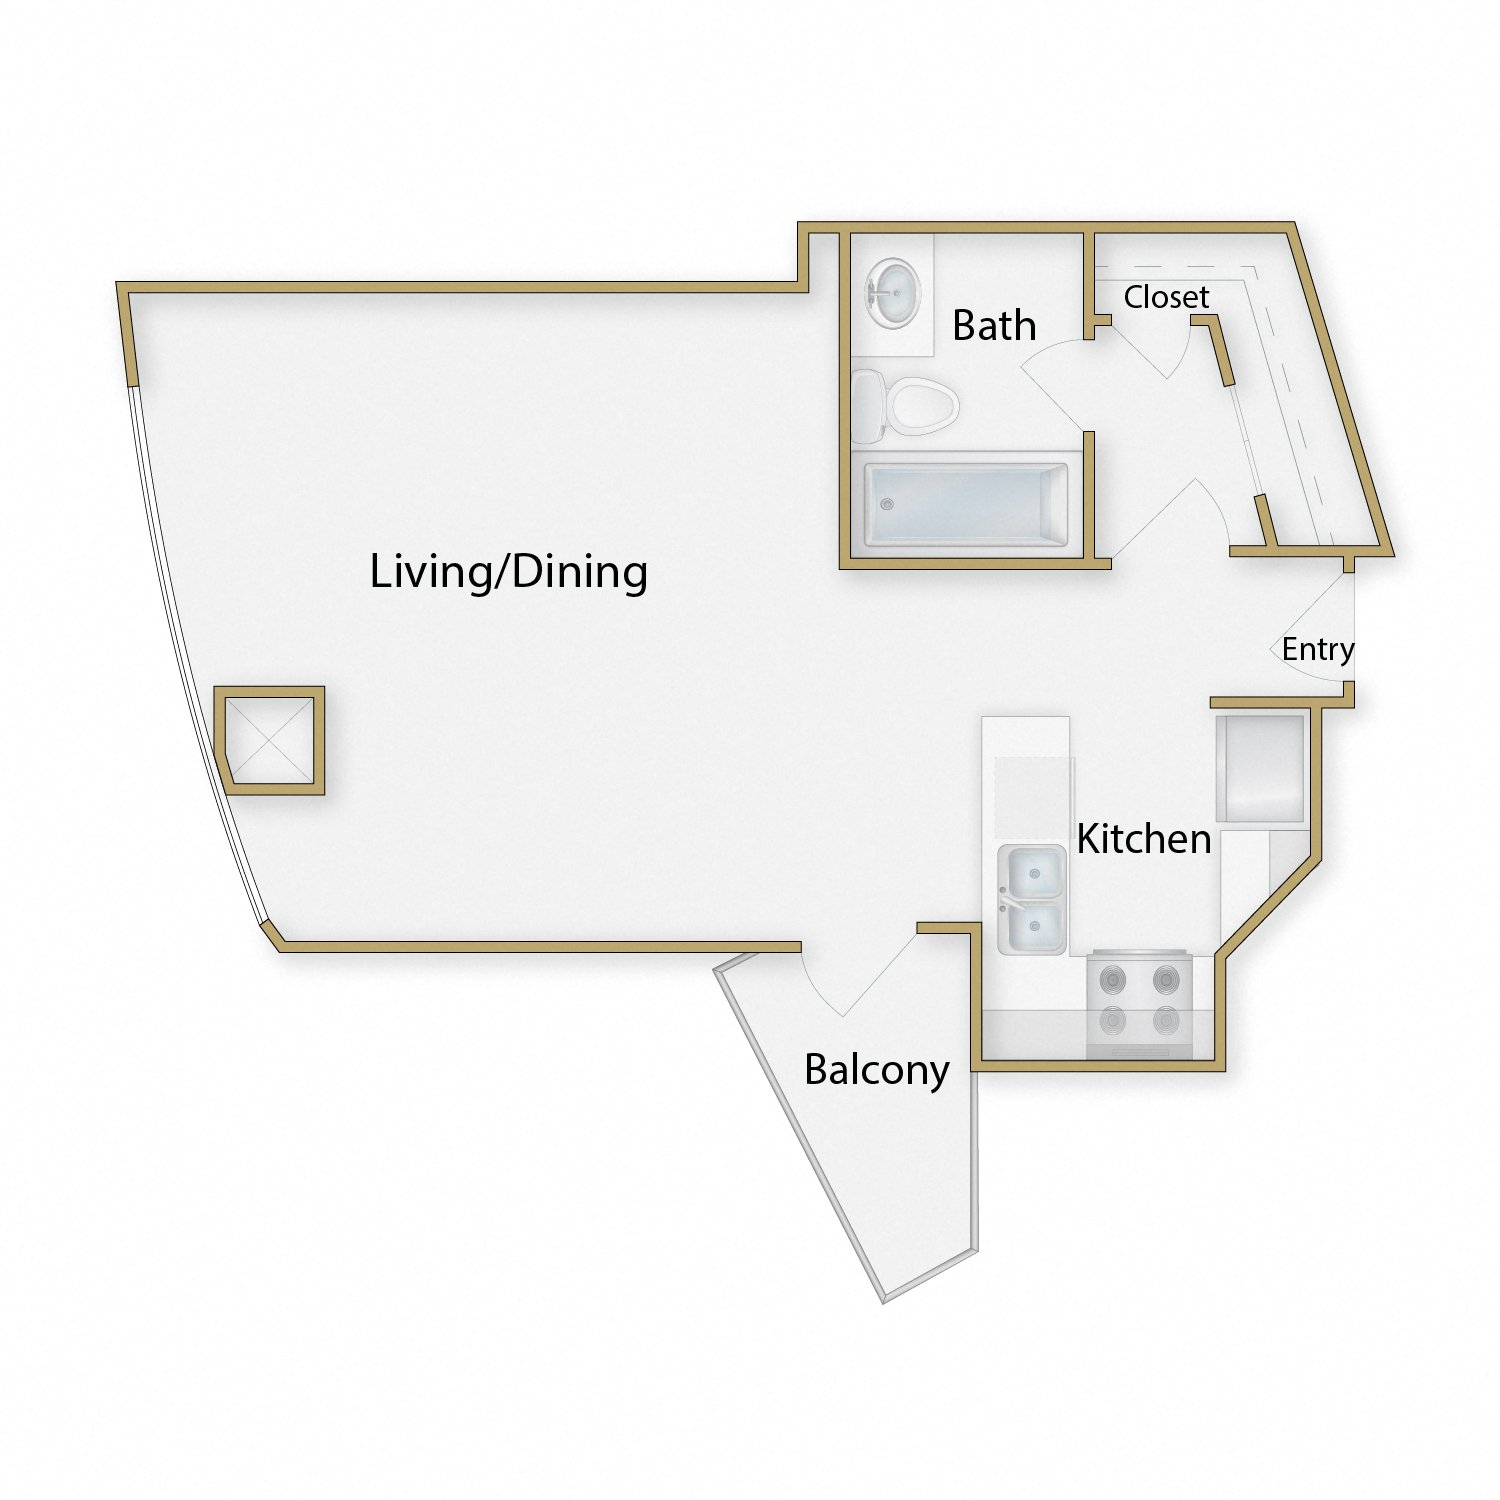 Embarcadero Two floor plan diagram. Studio apartment with an open kitchen dining and living space, one bathroom, and a balcony.